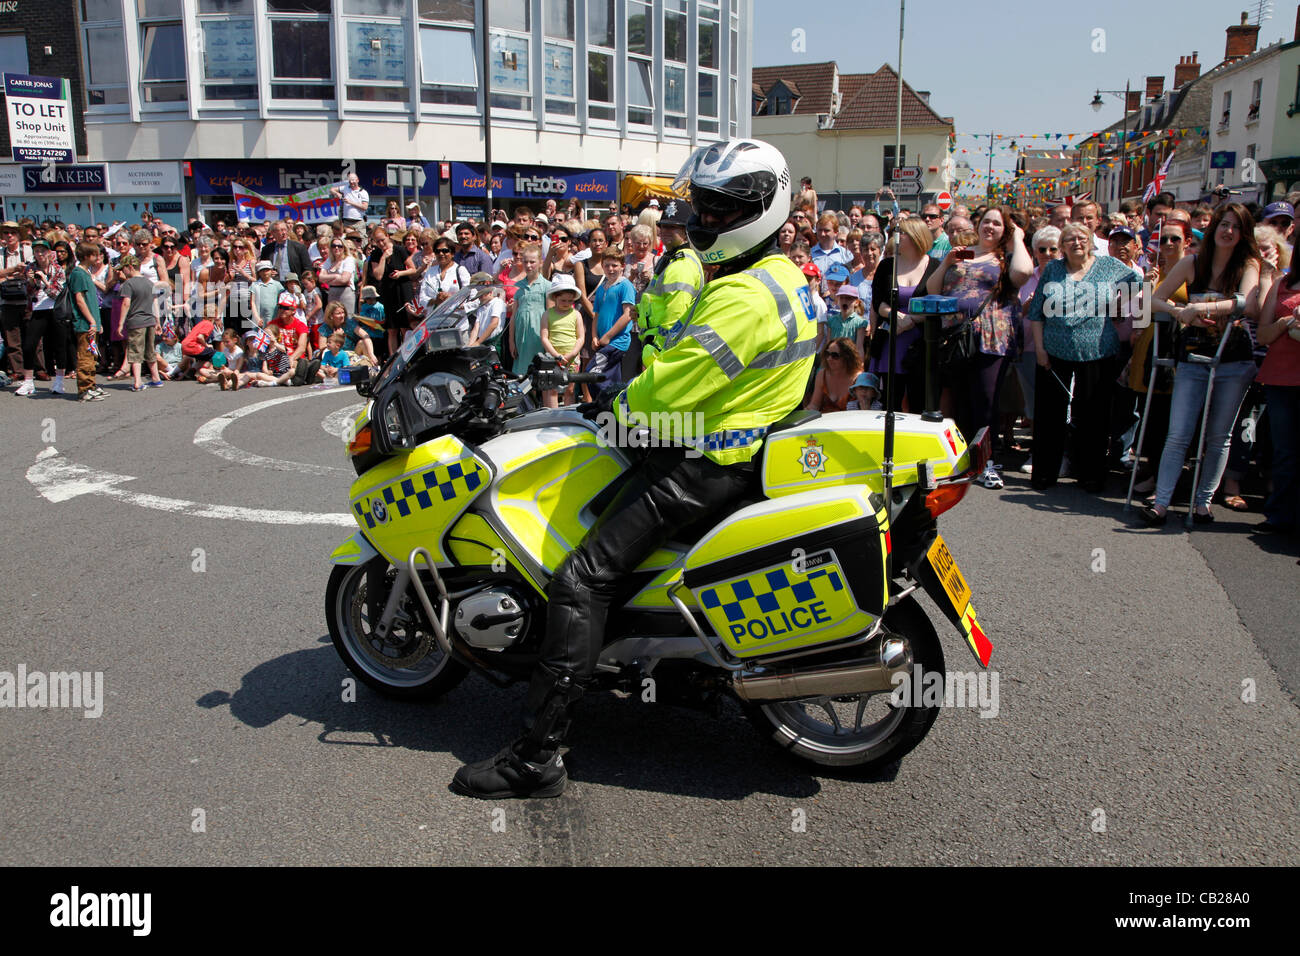 Wednesday, May 23rd 2012.  Swindon, Wiltshire, England, UK. Police patrol bike waits ahead of the Olympic Torch - Stock Image